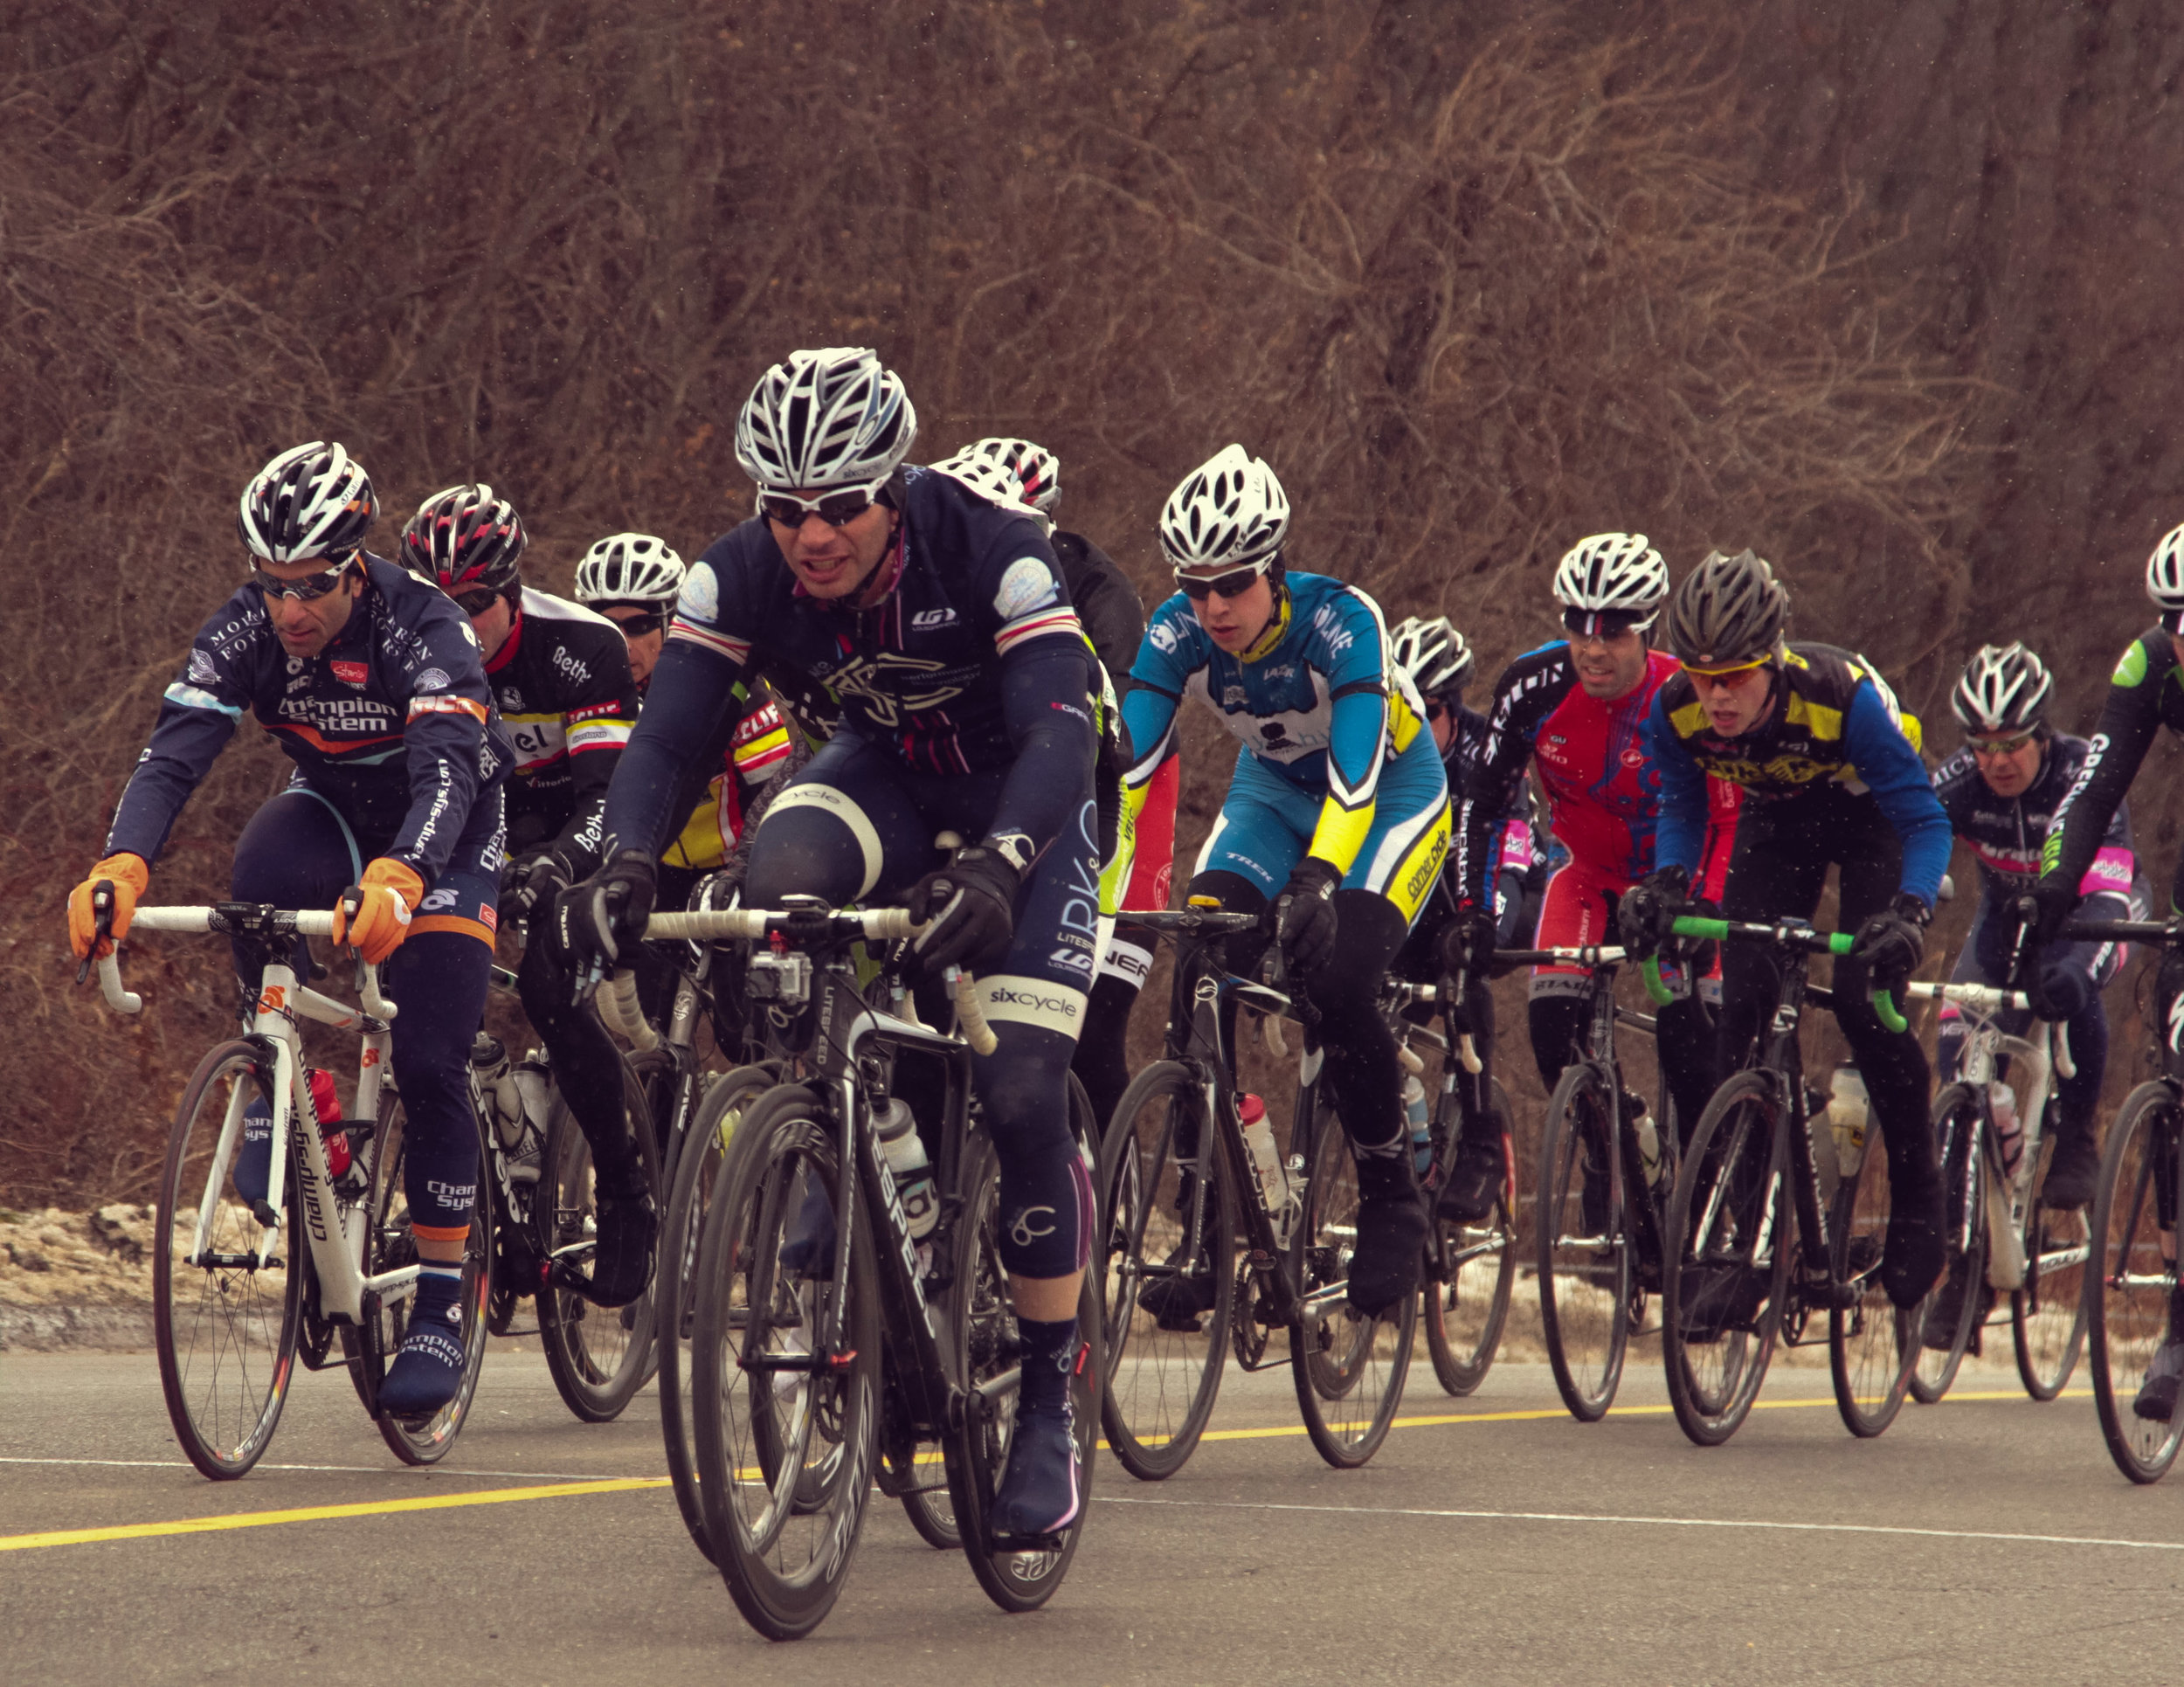 The loss of the Bethel Spring Series stings more than perhaps any other deceased race in the tri-state area. In our early years the team spent every spring Sunday racing that famous loop, with many riders doubling up across fields, followed by lunch at a local diner (ideally paid for out of race winnings). This photo dates to March 2013 when the team rode Litespeed bikes.